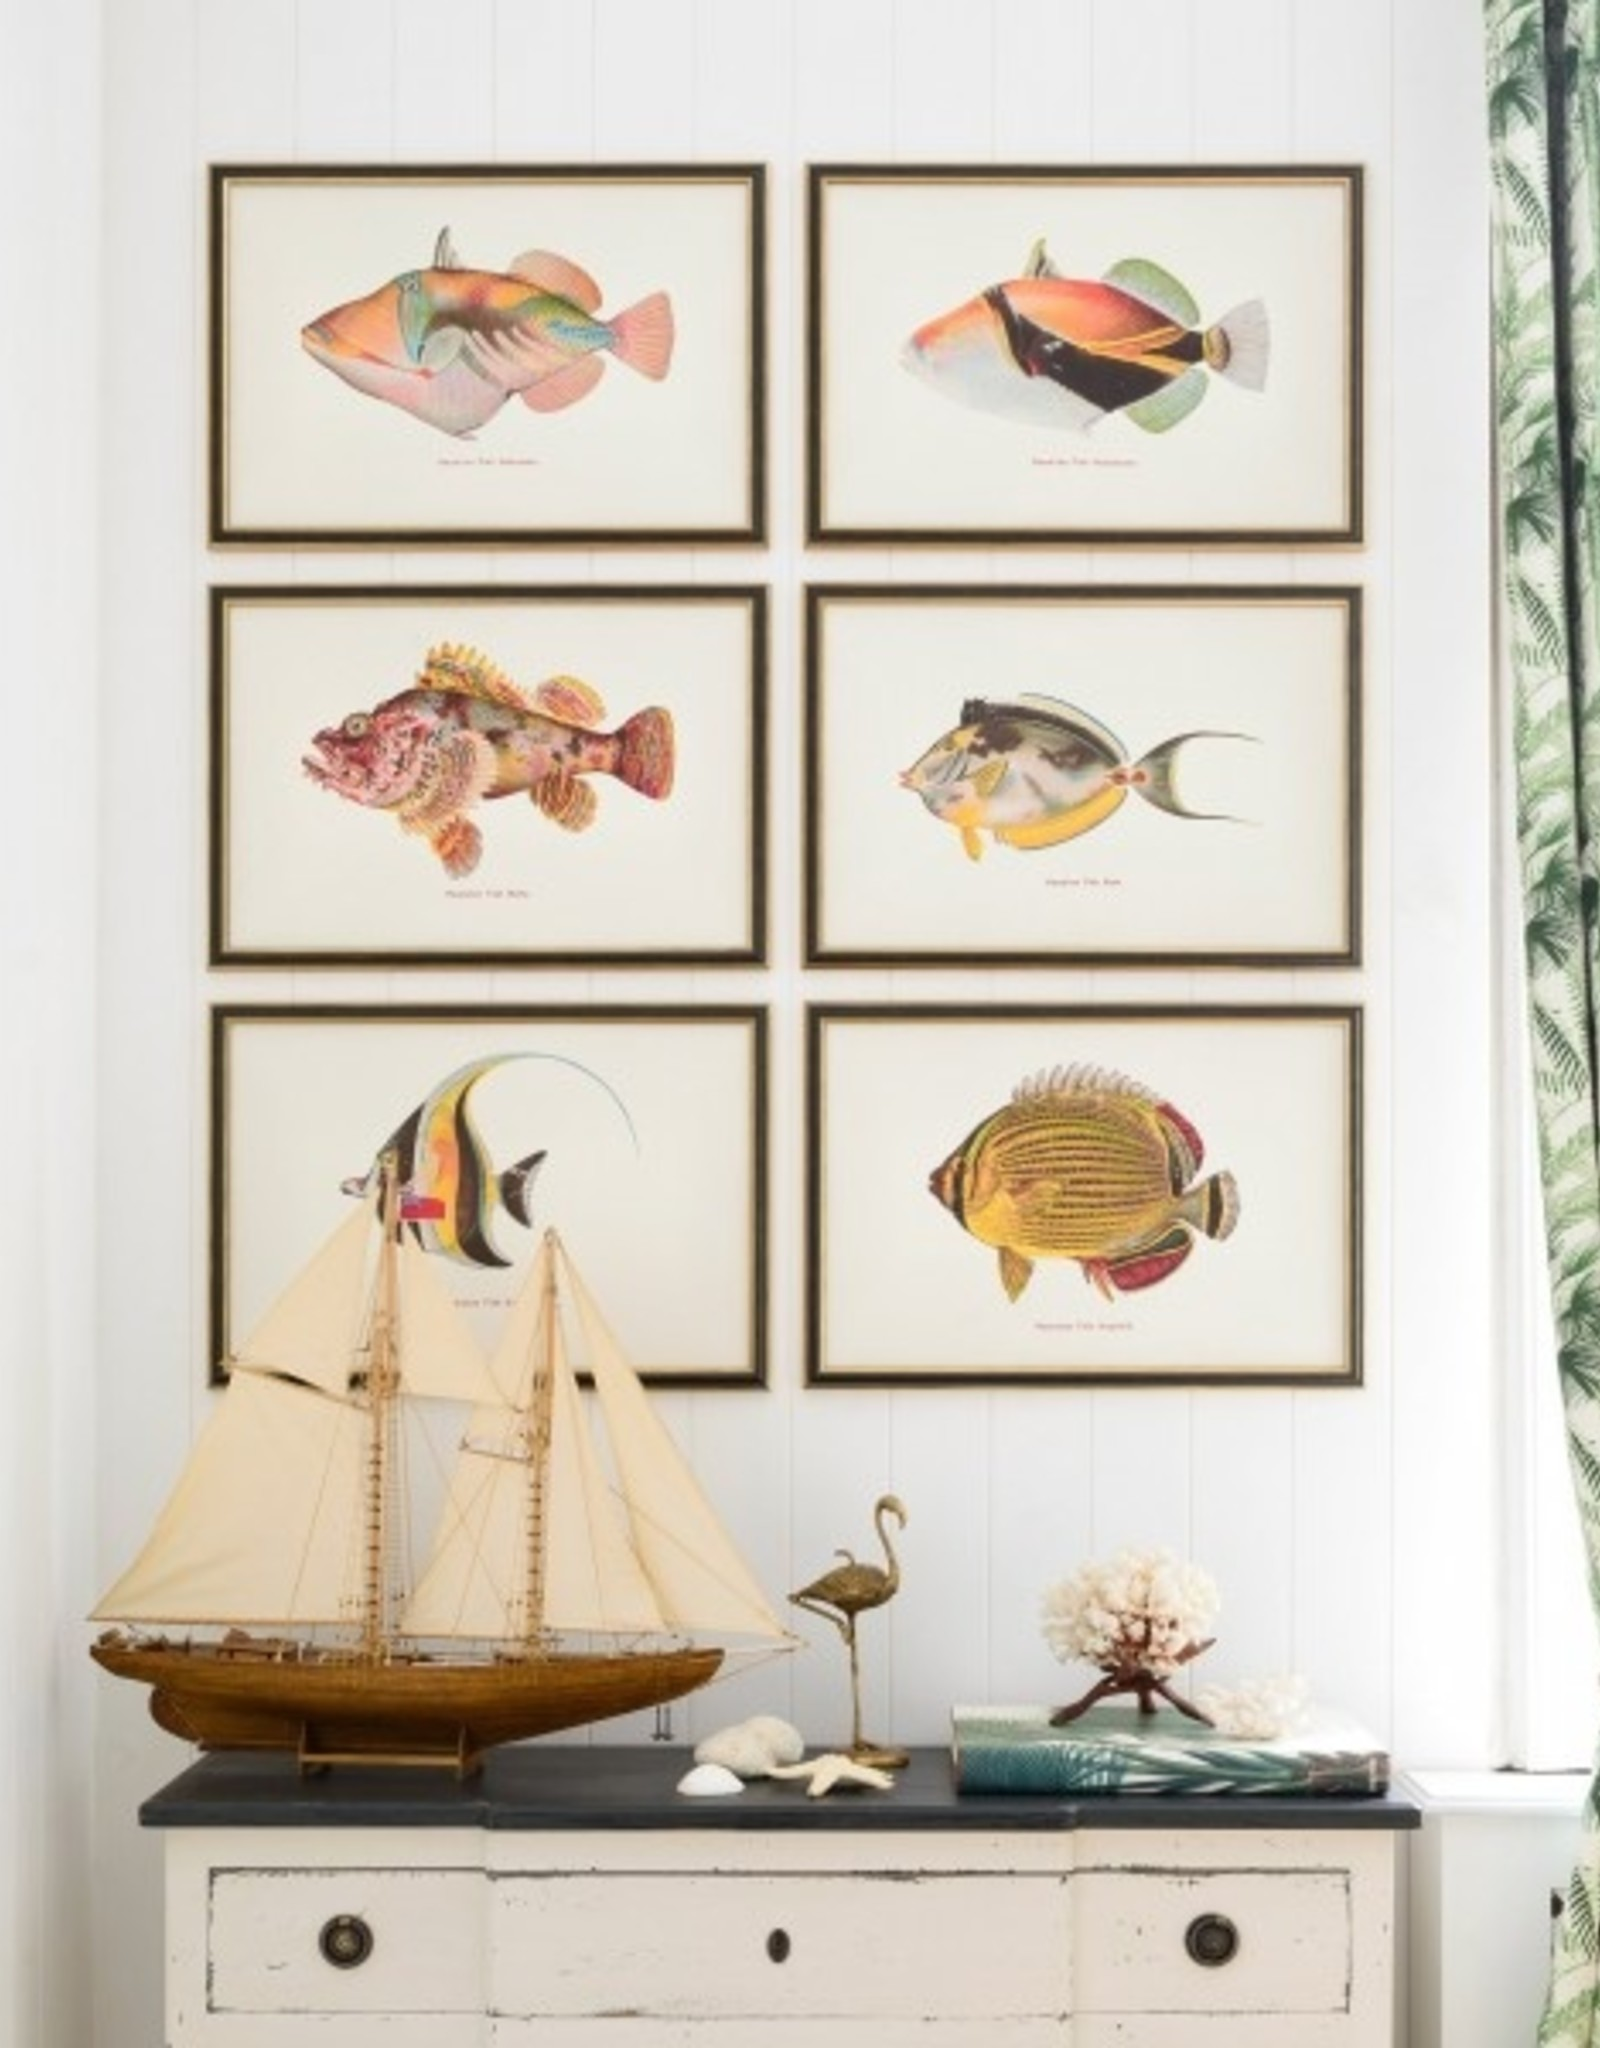 Mind the Gap Framed Art 60 x 40 cm - Fishes of hawaii - Kapuhili Fish Fish